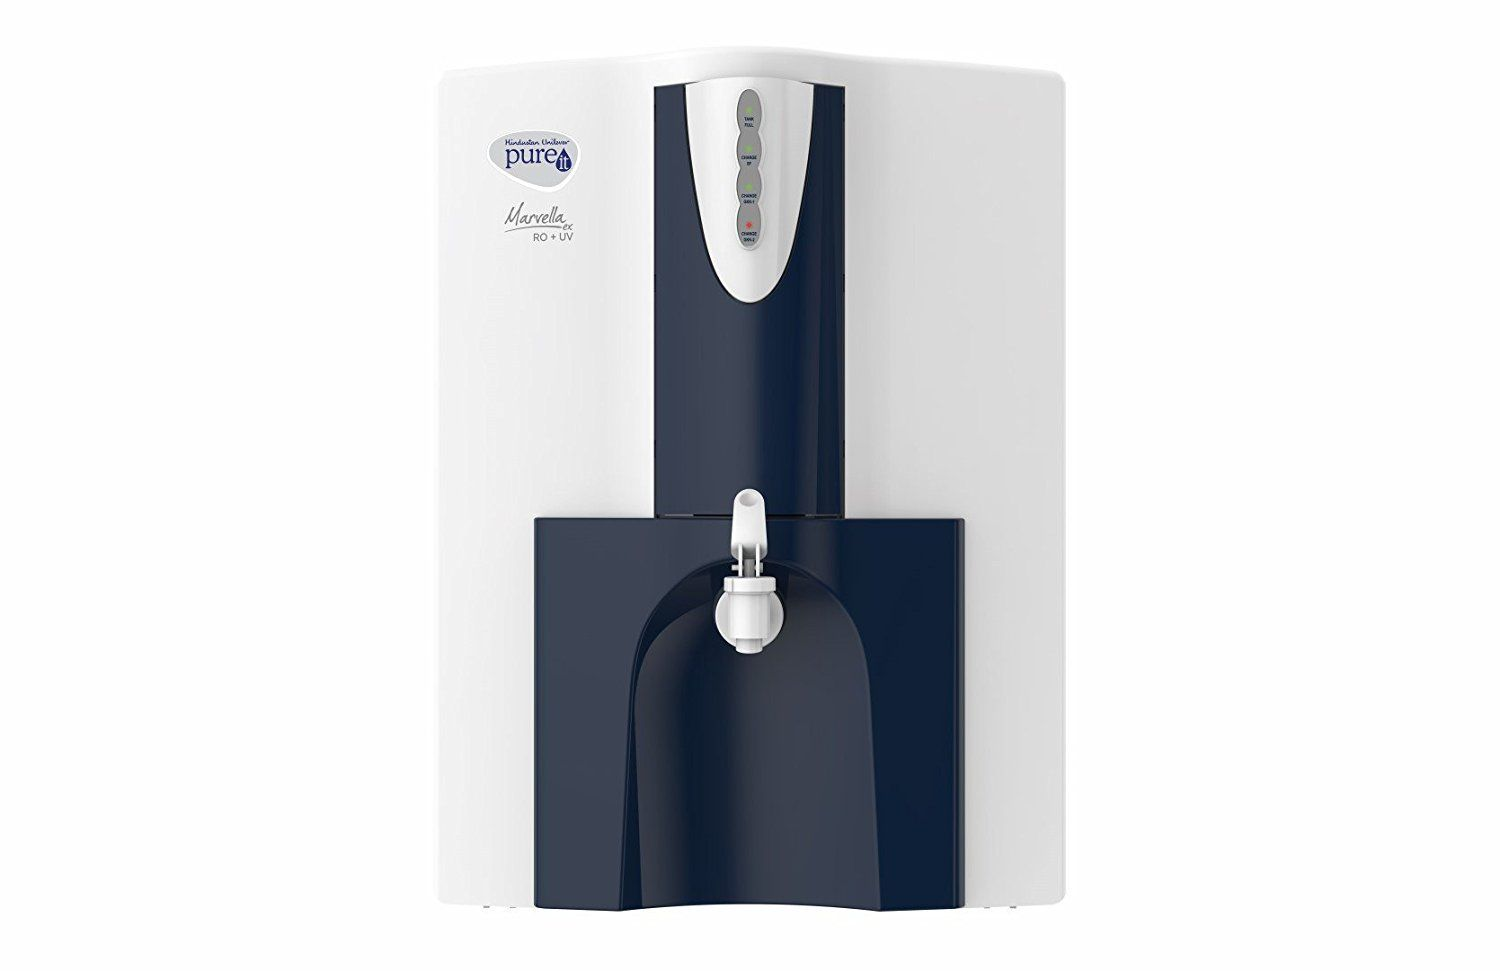 HUL Pureit Marvella Ex 10Ltr RO UV Water Purifier